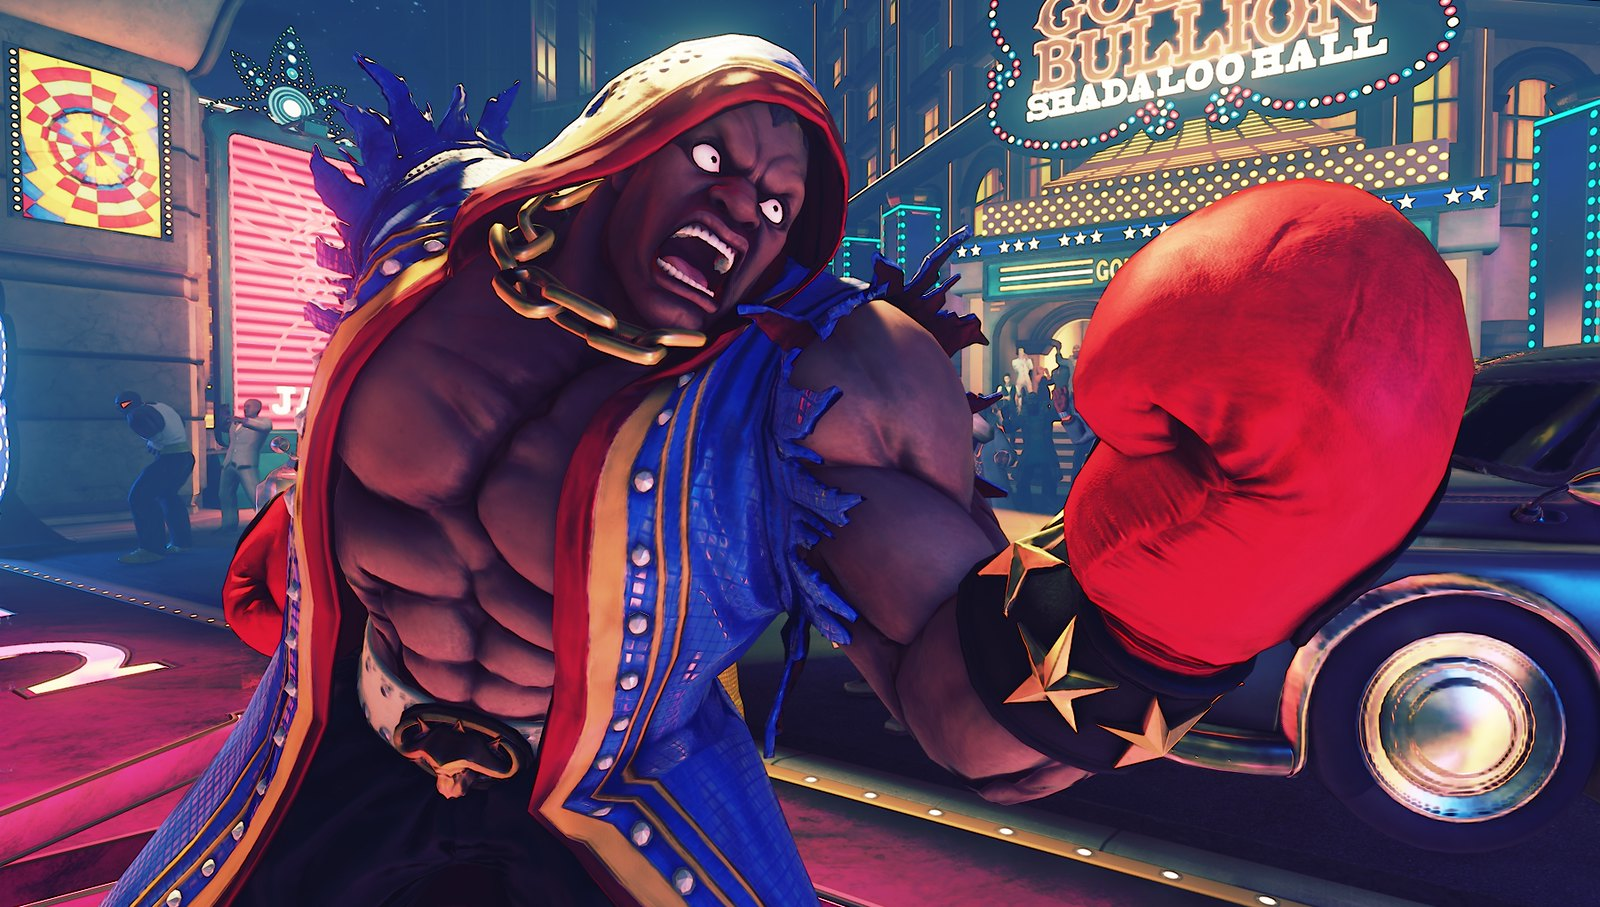 Screenshot di un personaggio di Street Fighter V